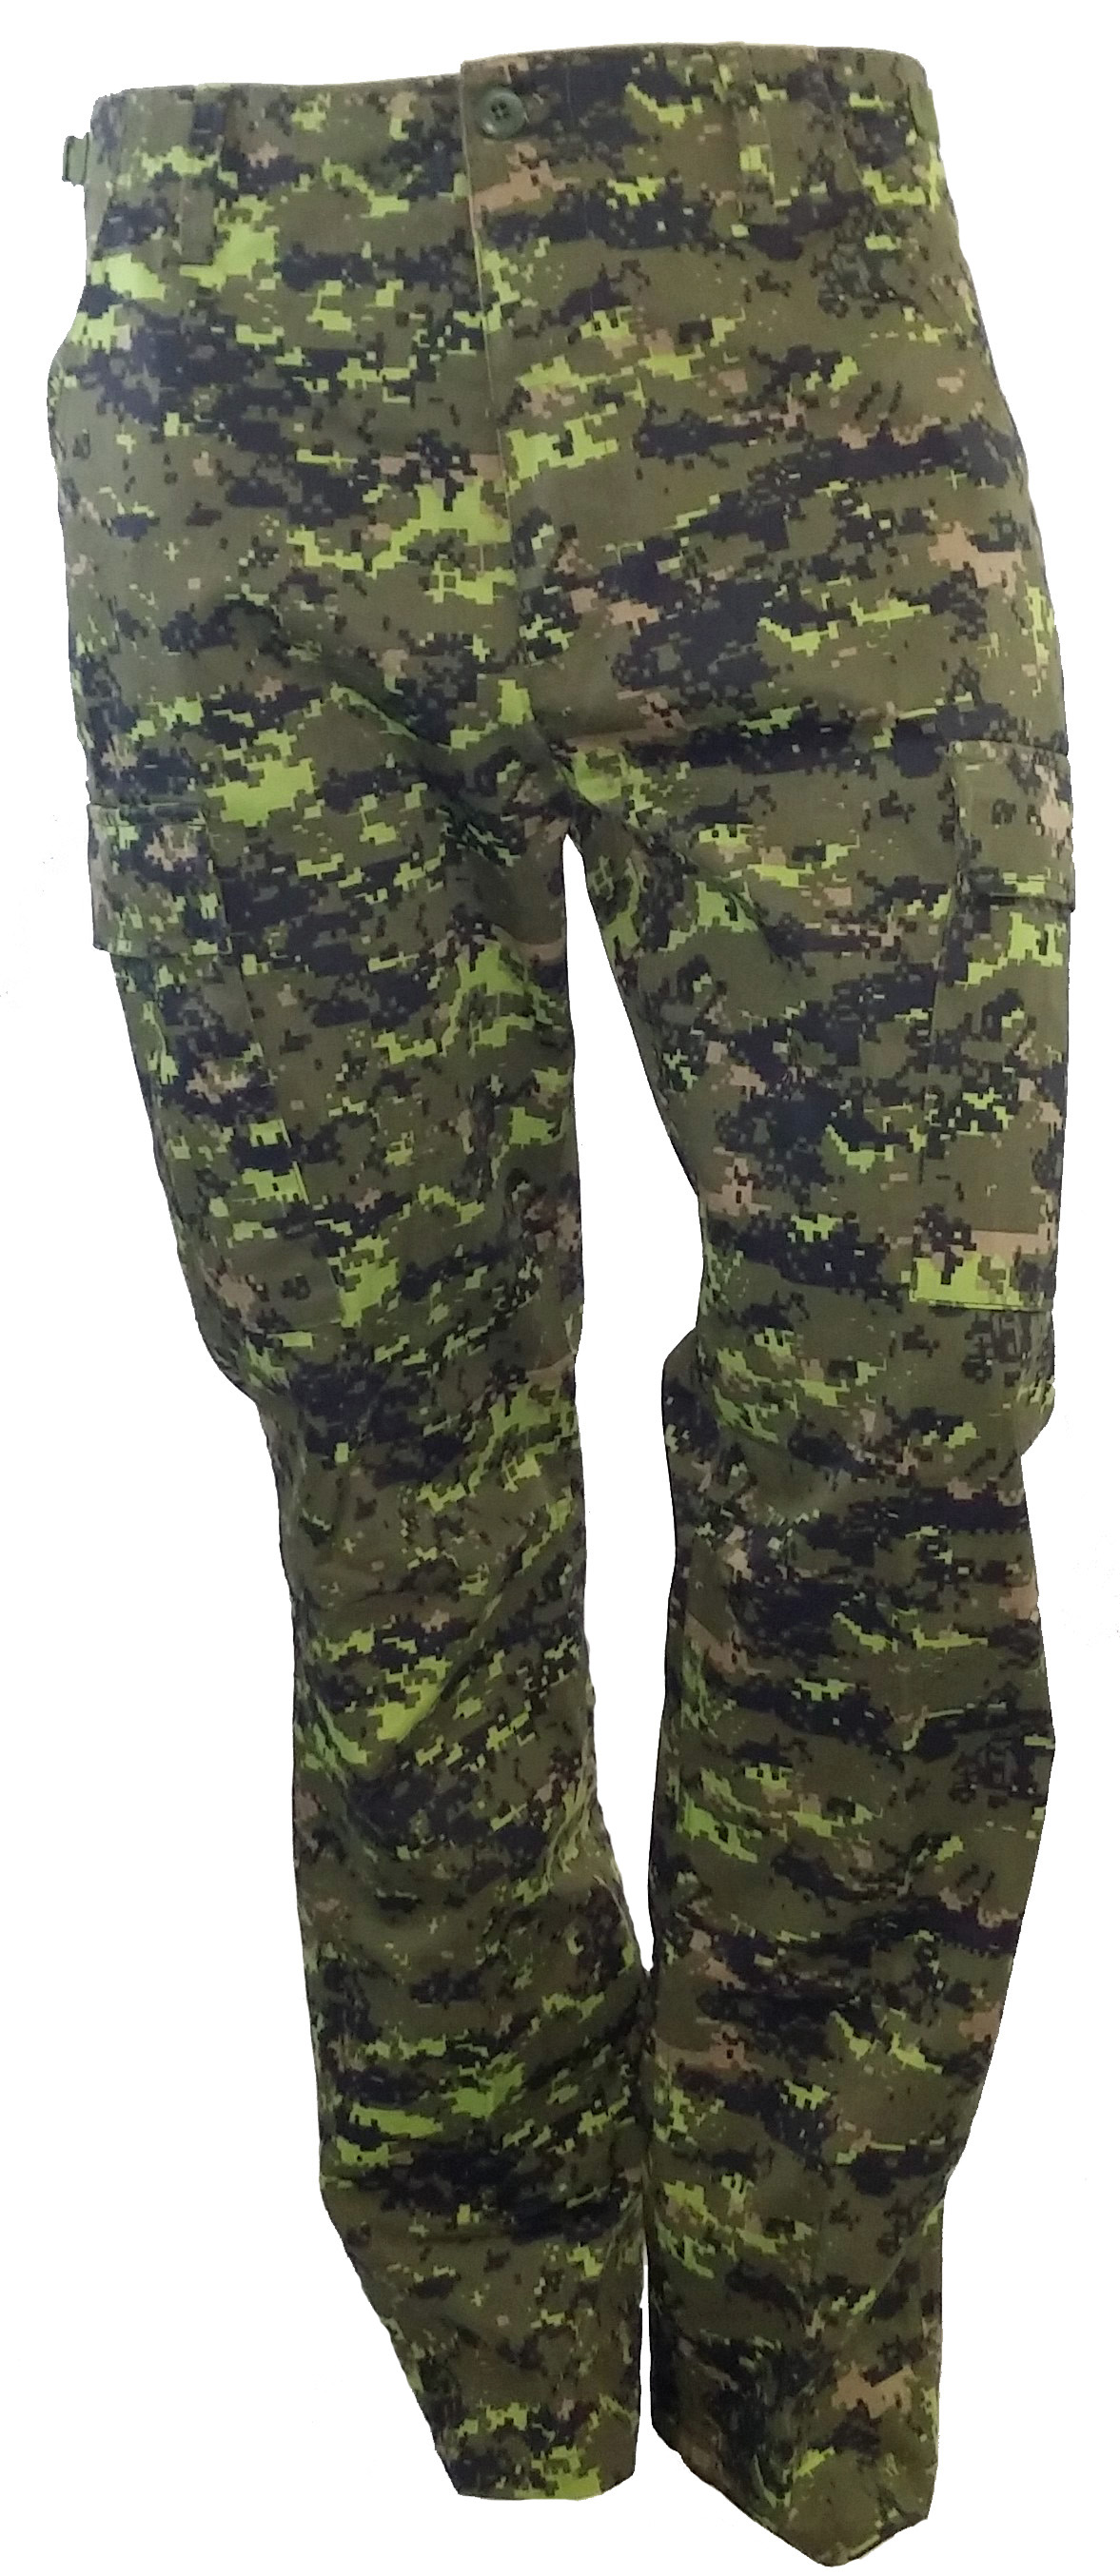 BDU army style pants Canadian digital camo